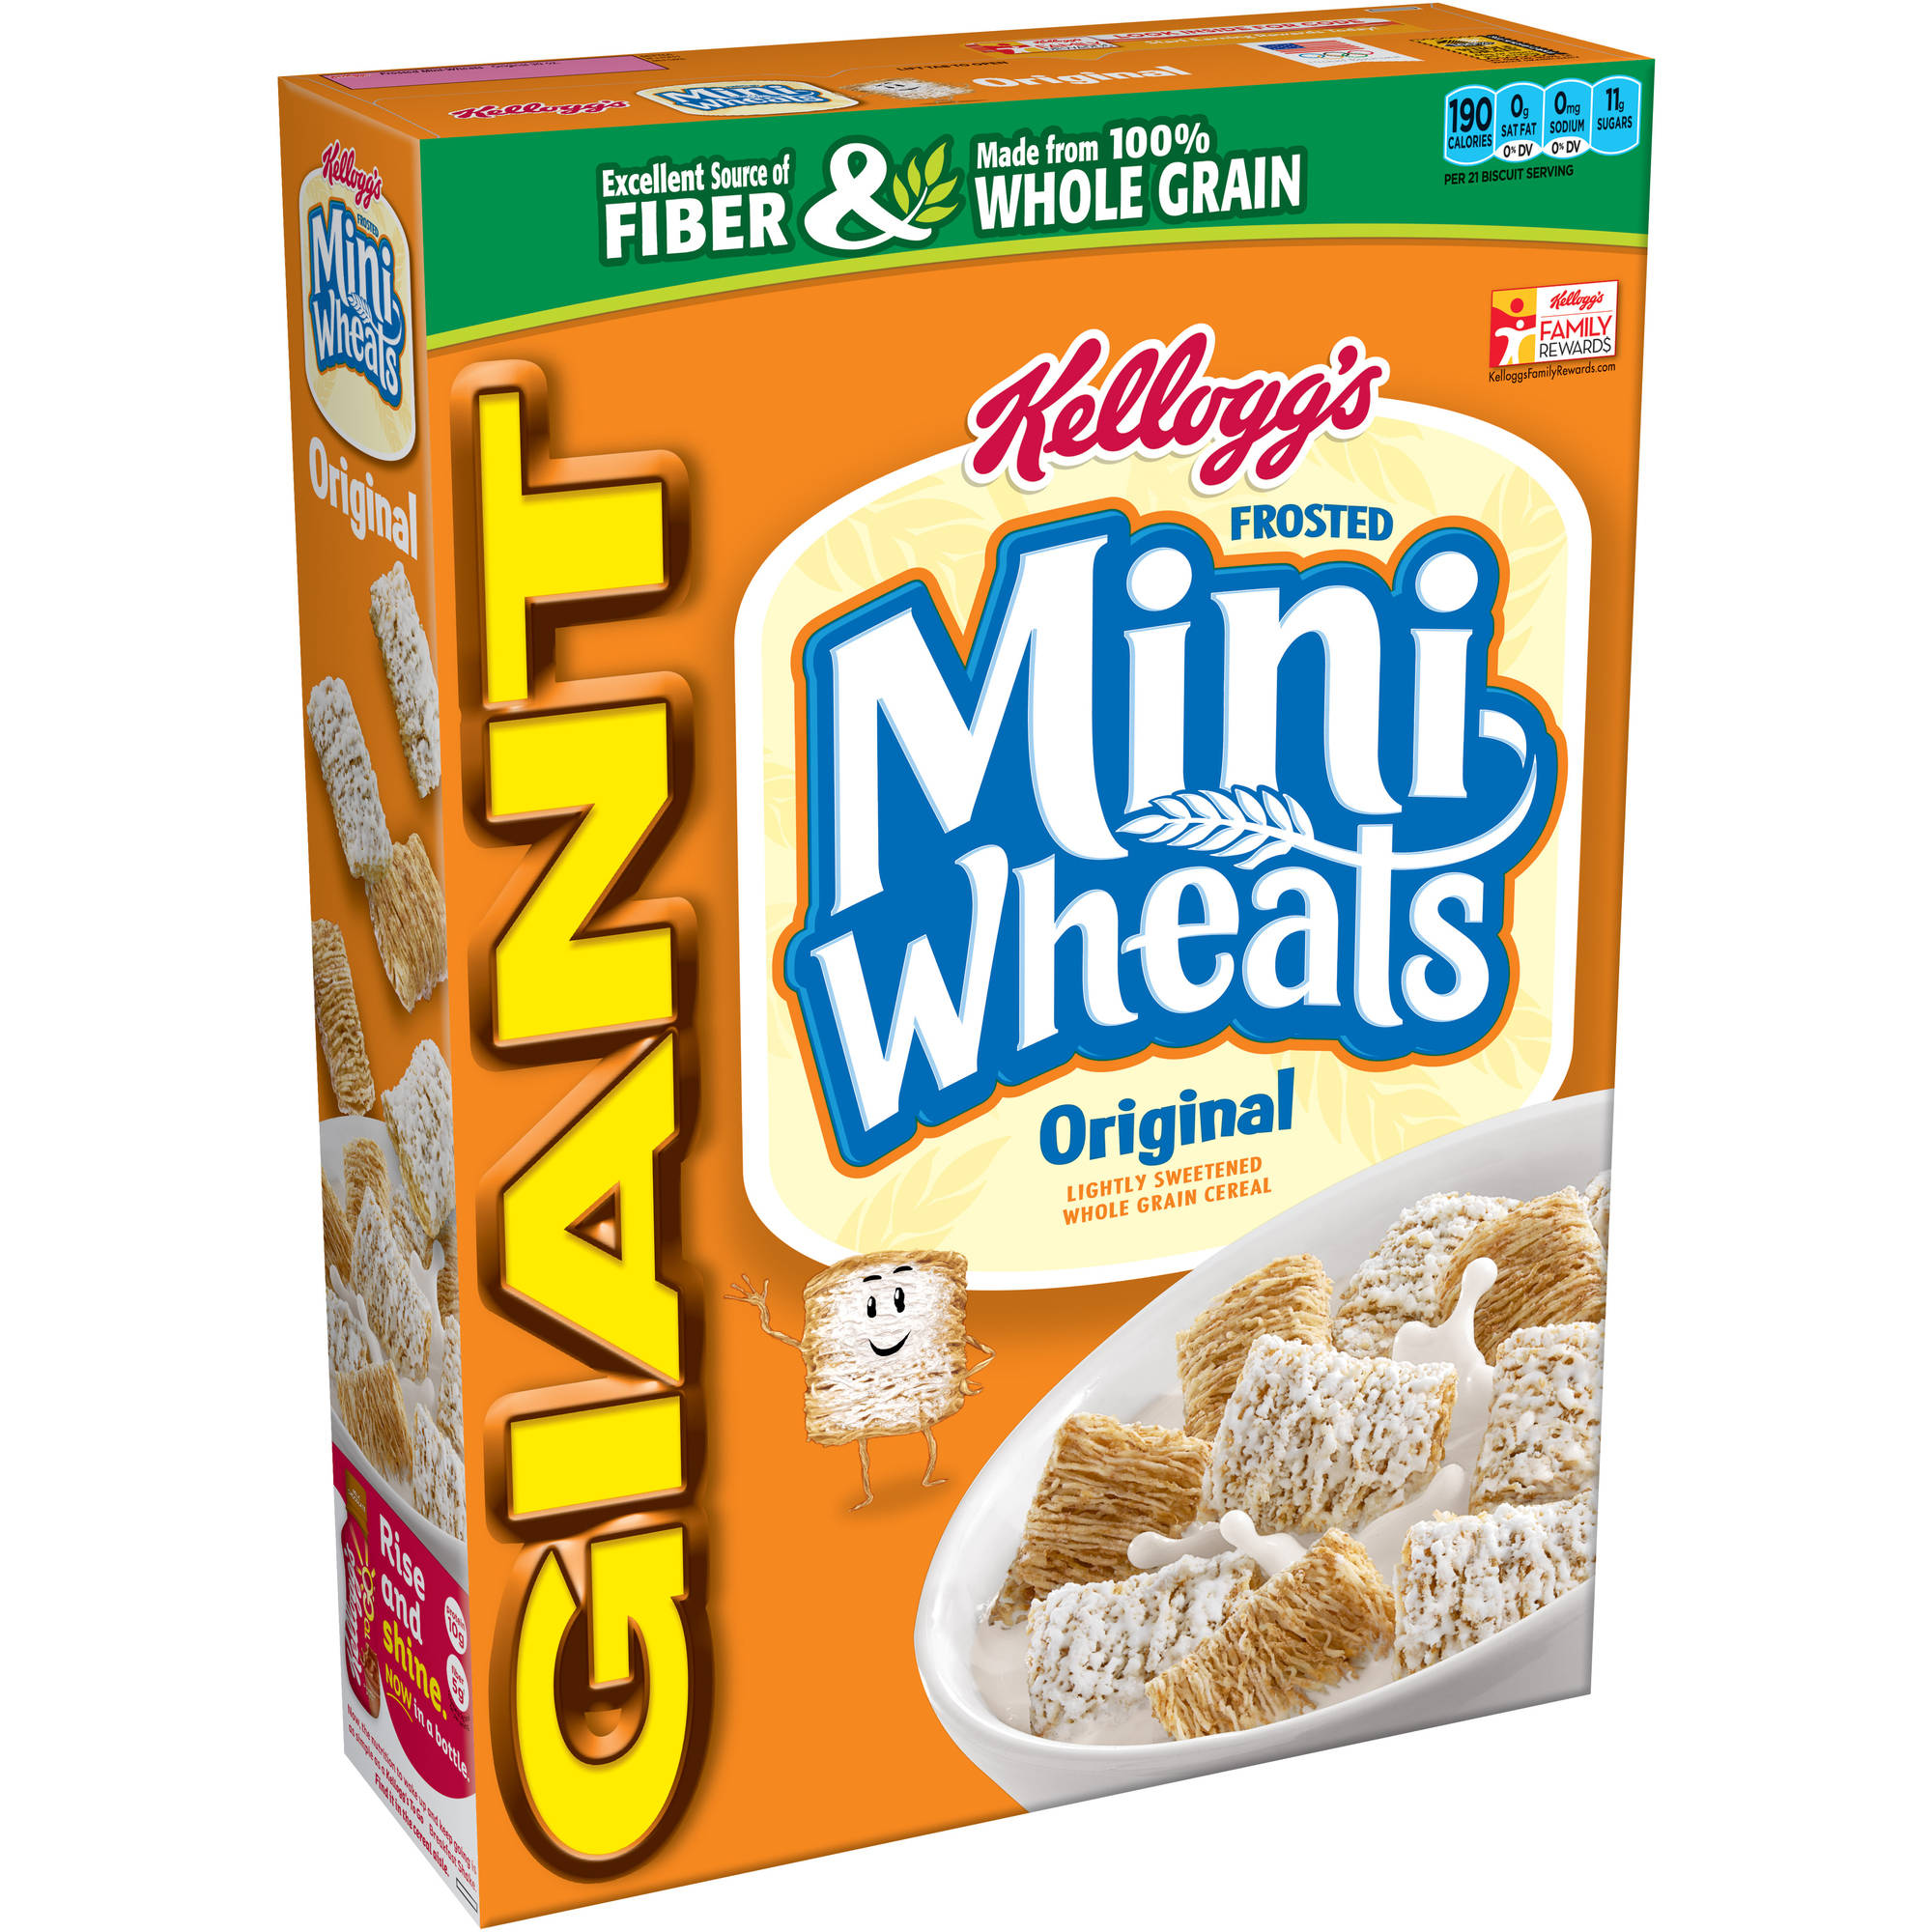 Kellogg's Frosted Mini Wheats Original 36oz